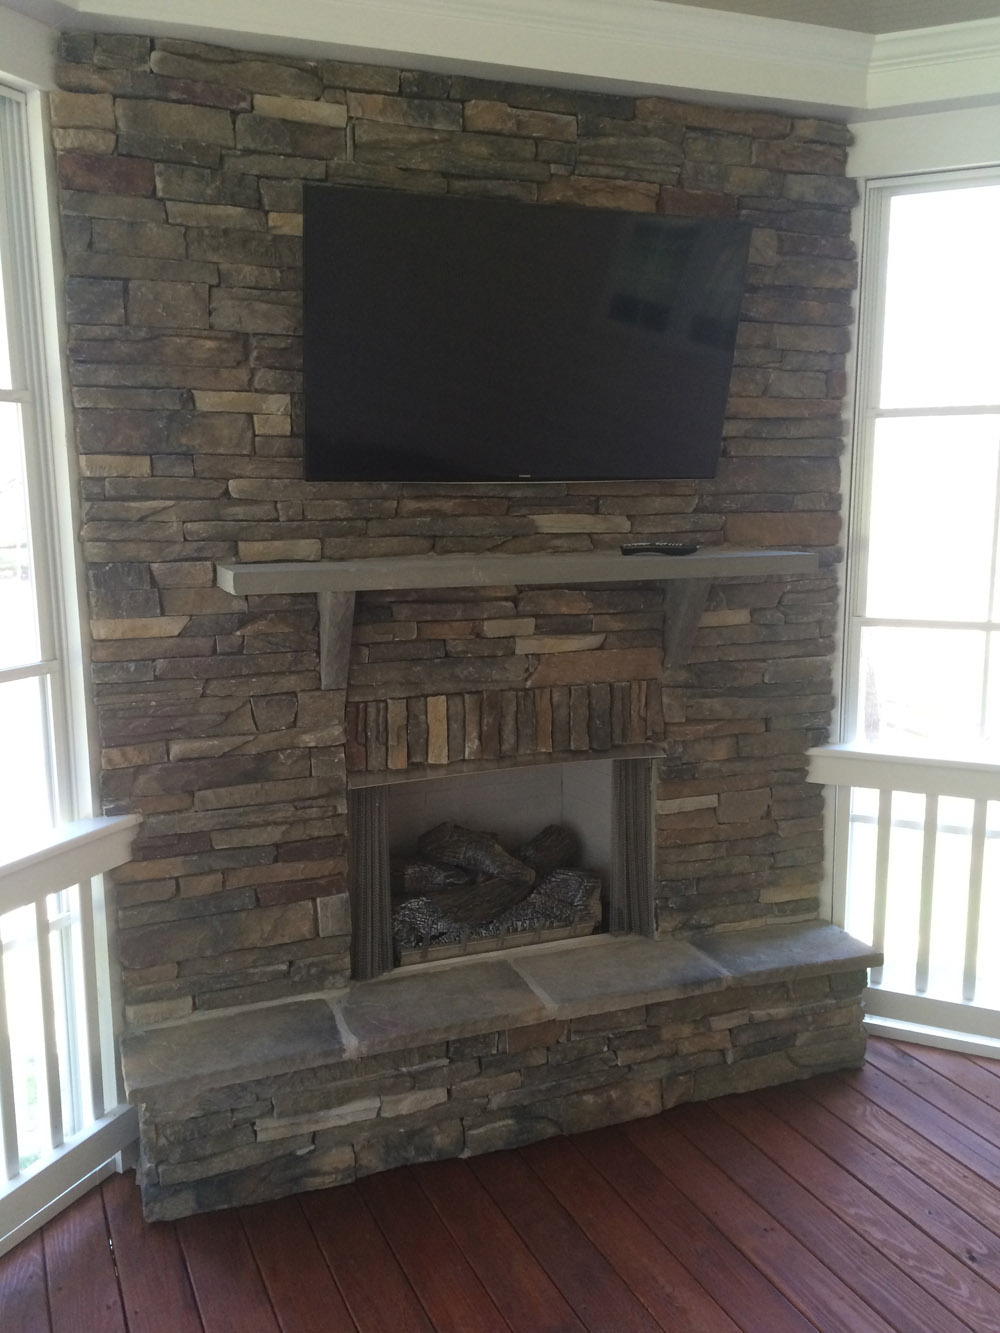 Adding an outdoor fireplace to your Raleigh